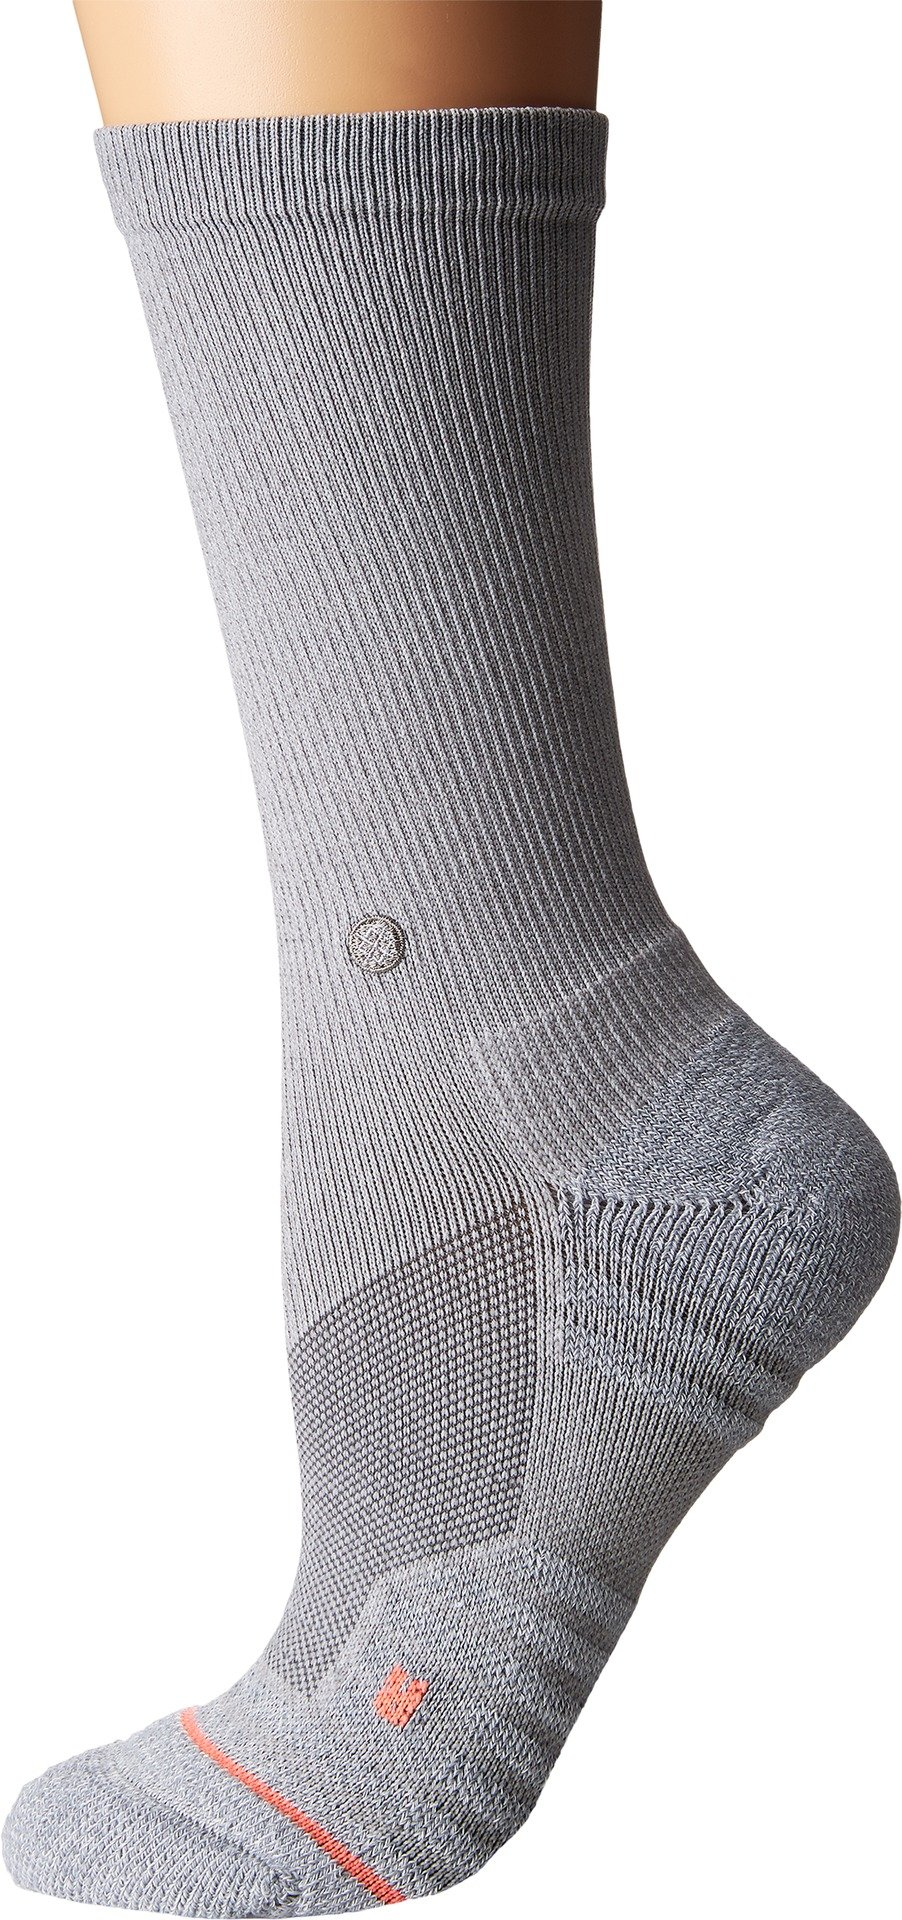 Stance Women's Icon Crew Socks,Small,Grey